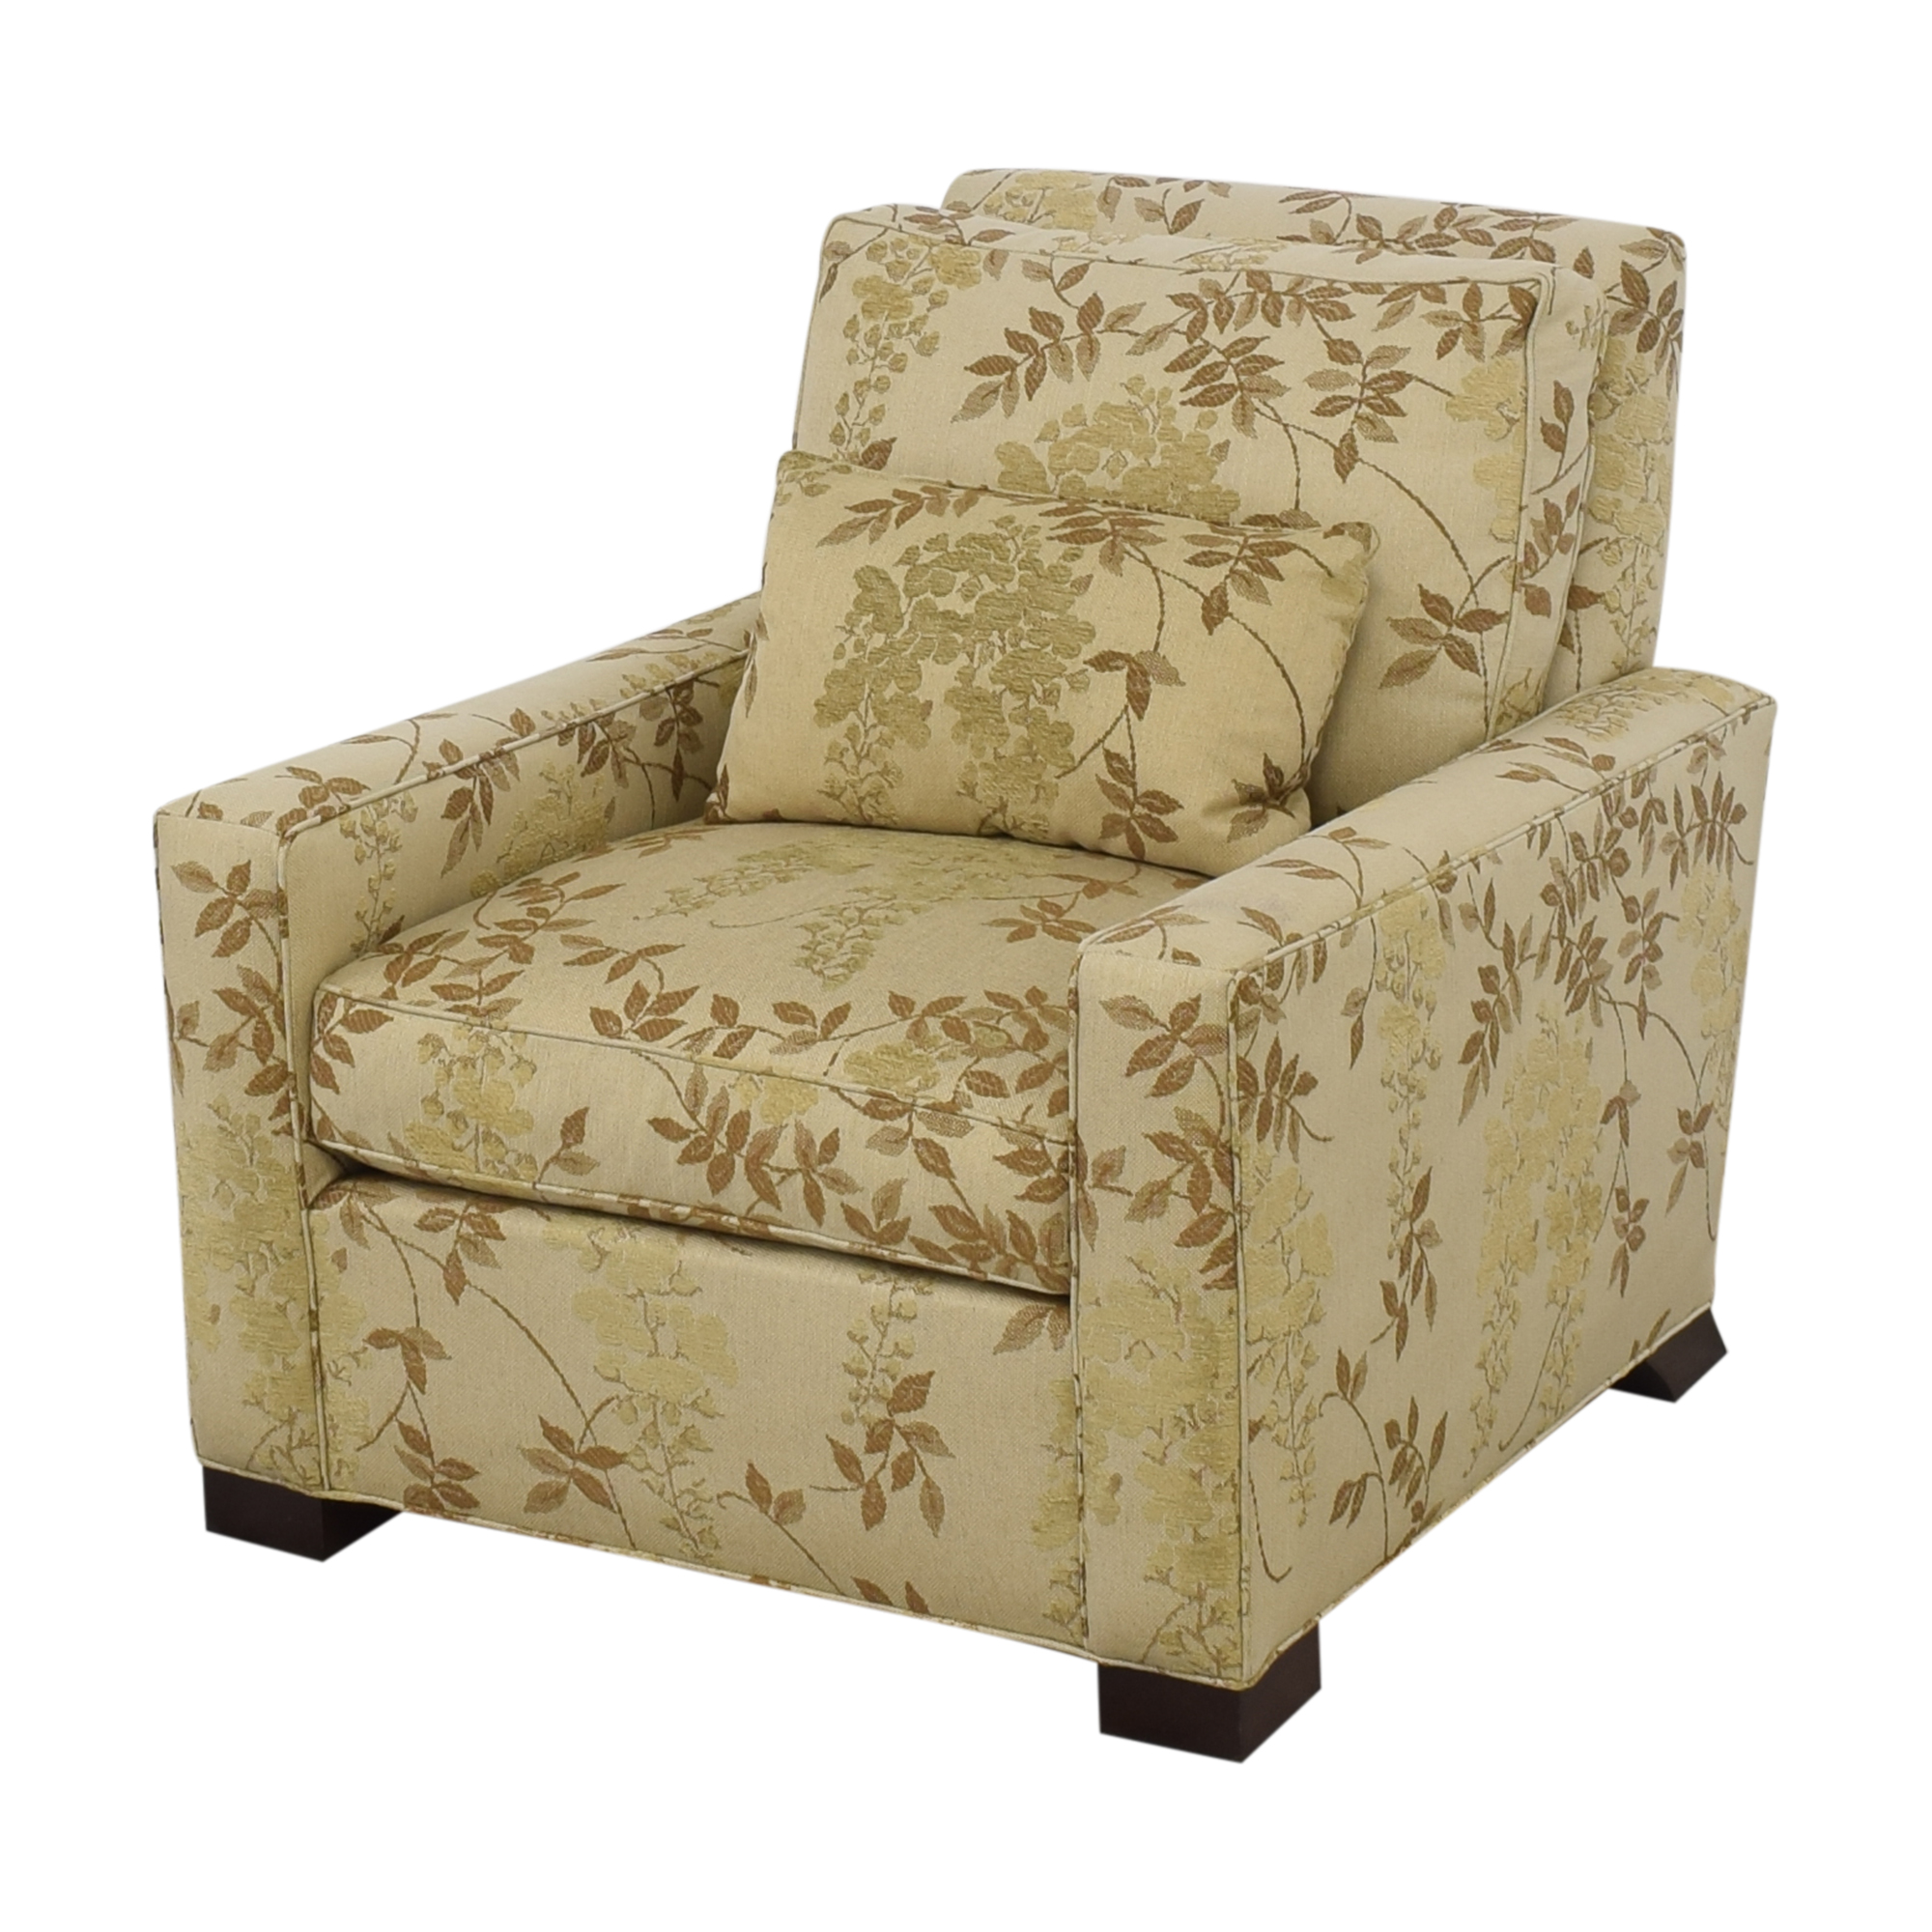 Hickory Chair Hickory Chair Upholstered Club Chair price